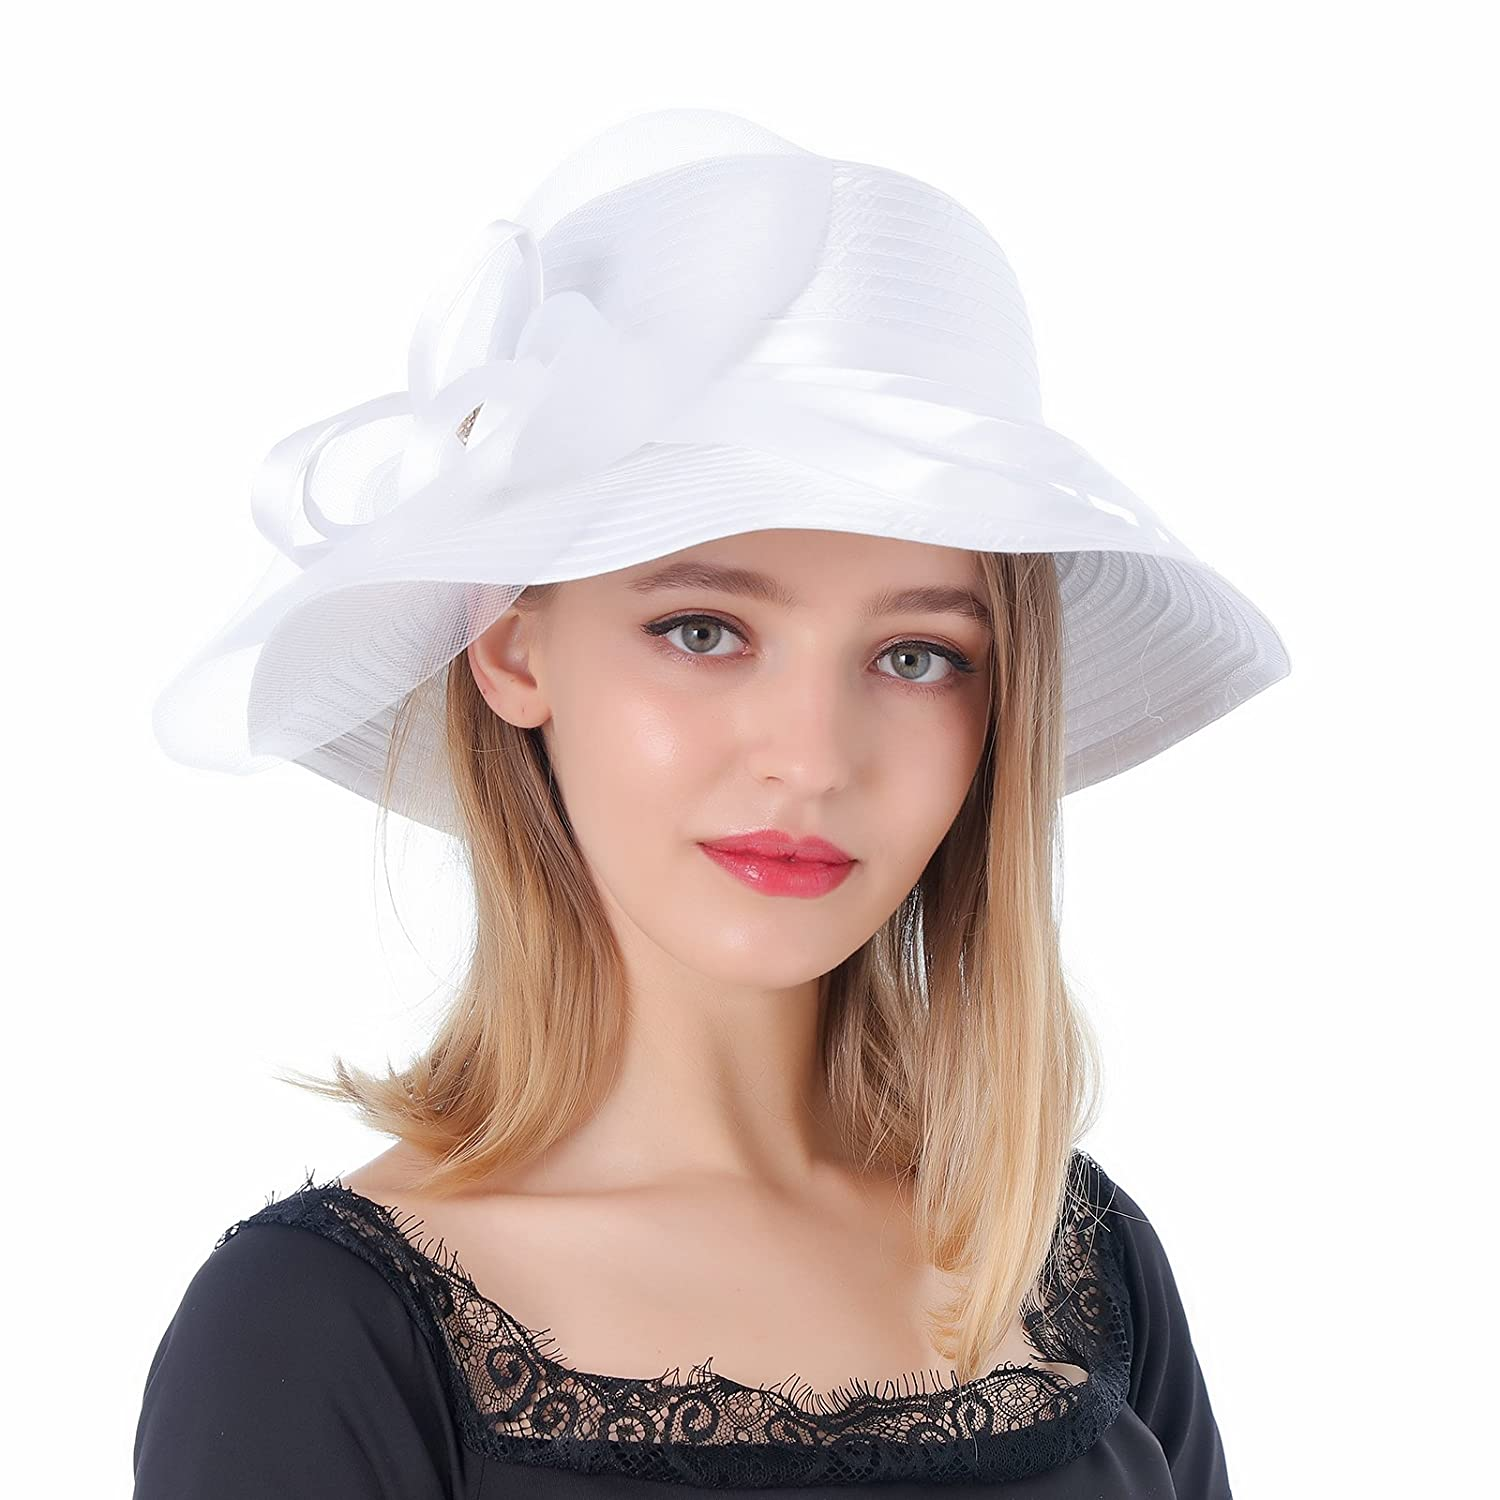 1930s Style Hats | 30s Ladies Hats Dantiya Sun Hats For Womens Summer Wide Brim Kentucky Derby Church Dress Wedding Floral Party Hat $16.99 AT vintagedancer.com